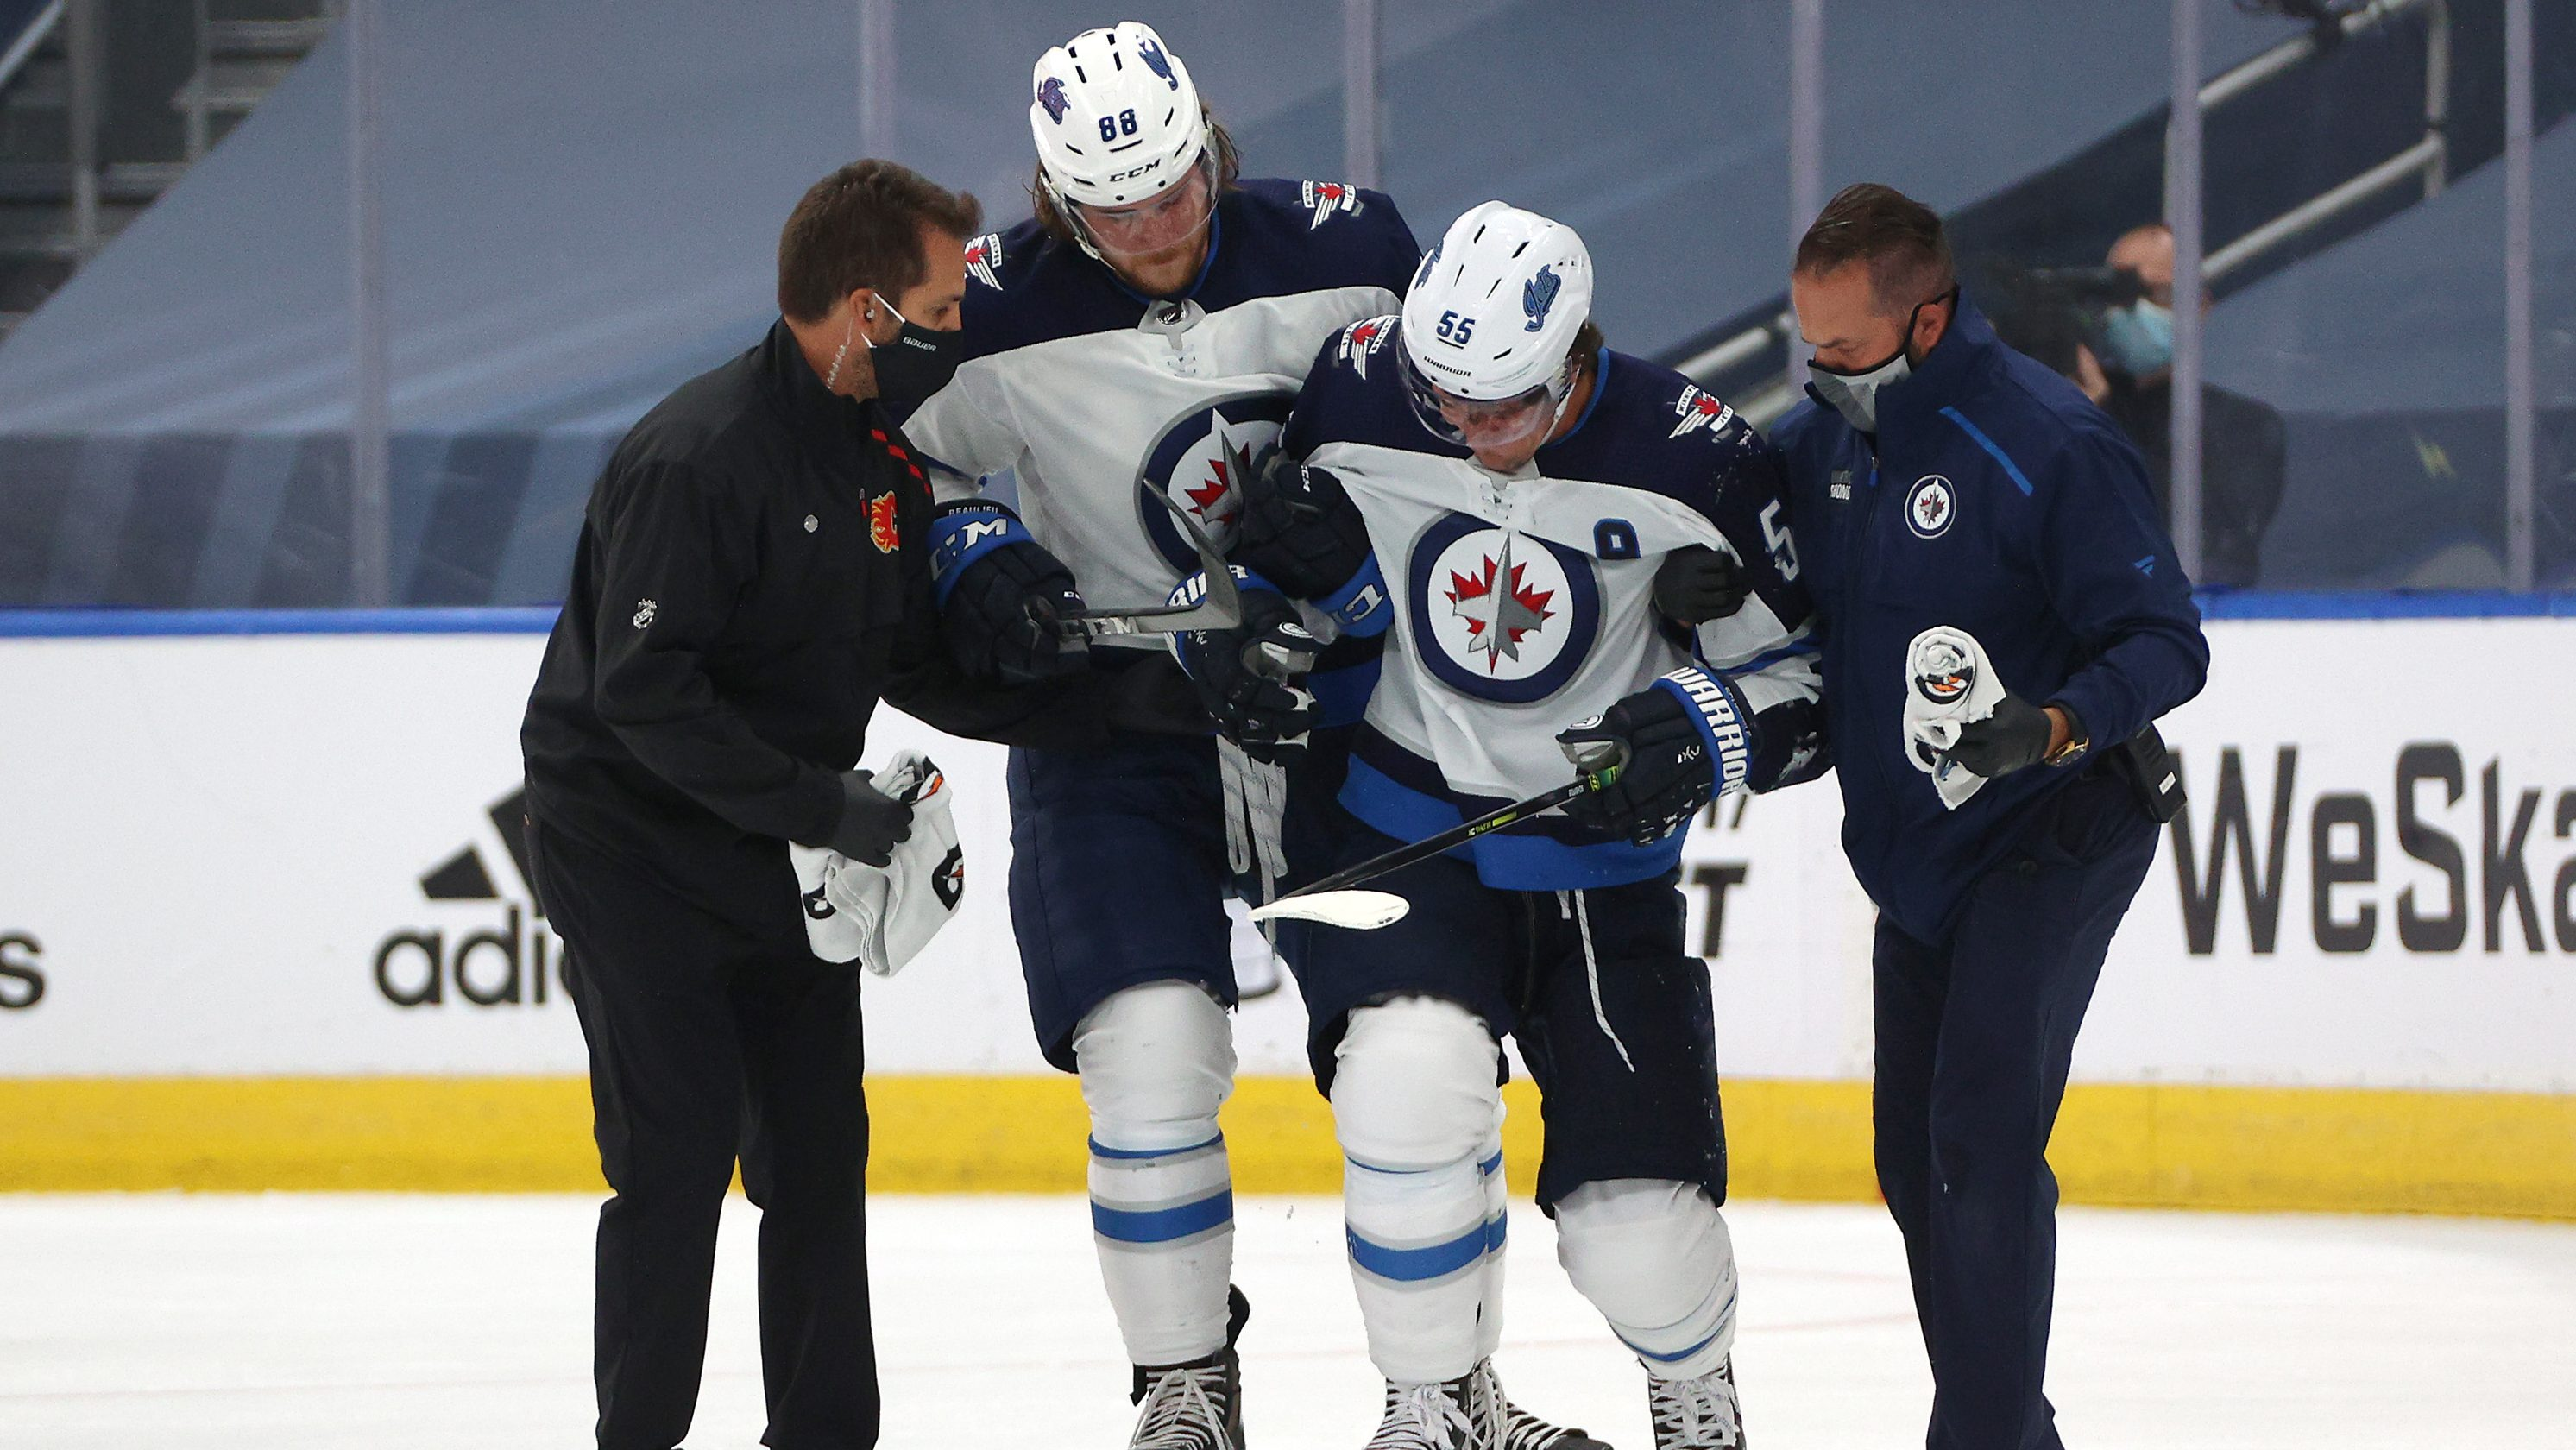 Jets Mark Scheifele On Injury I Ll Be Back Better Than Ever